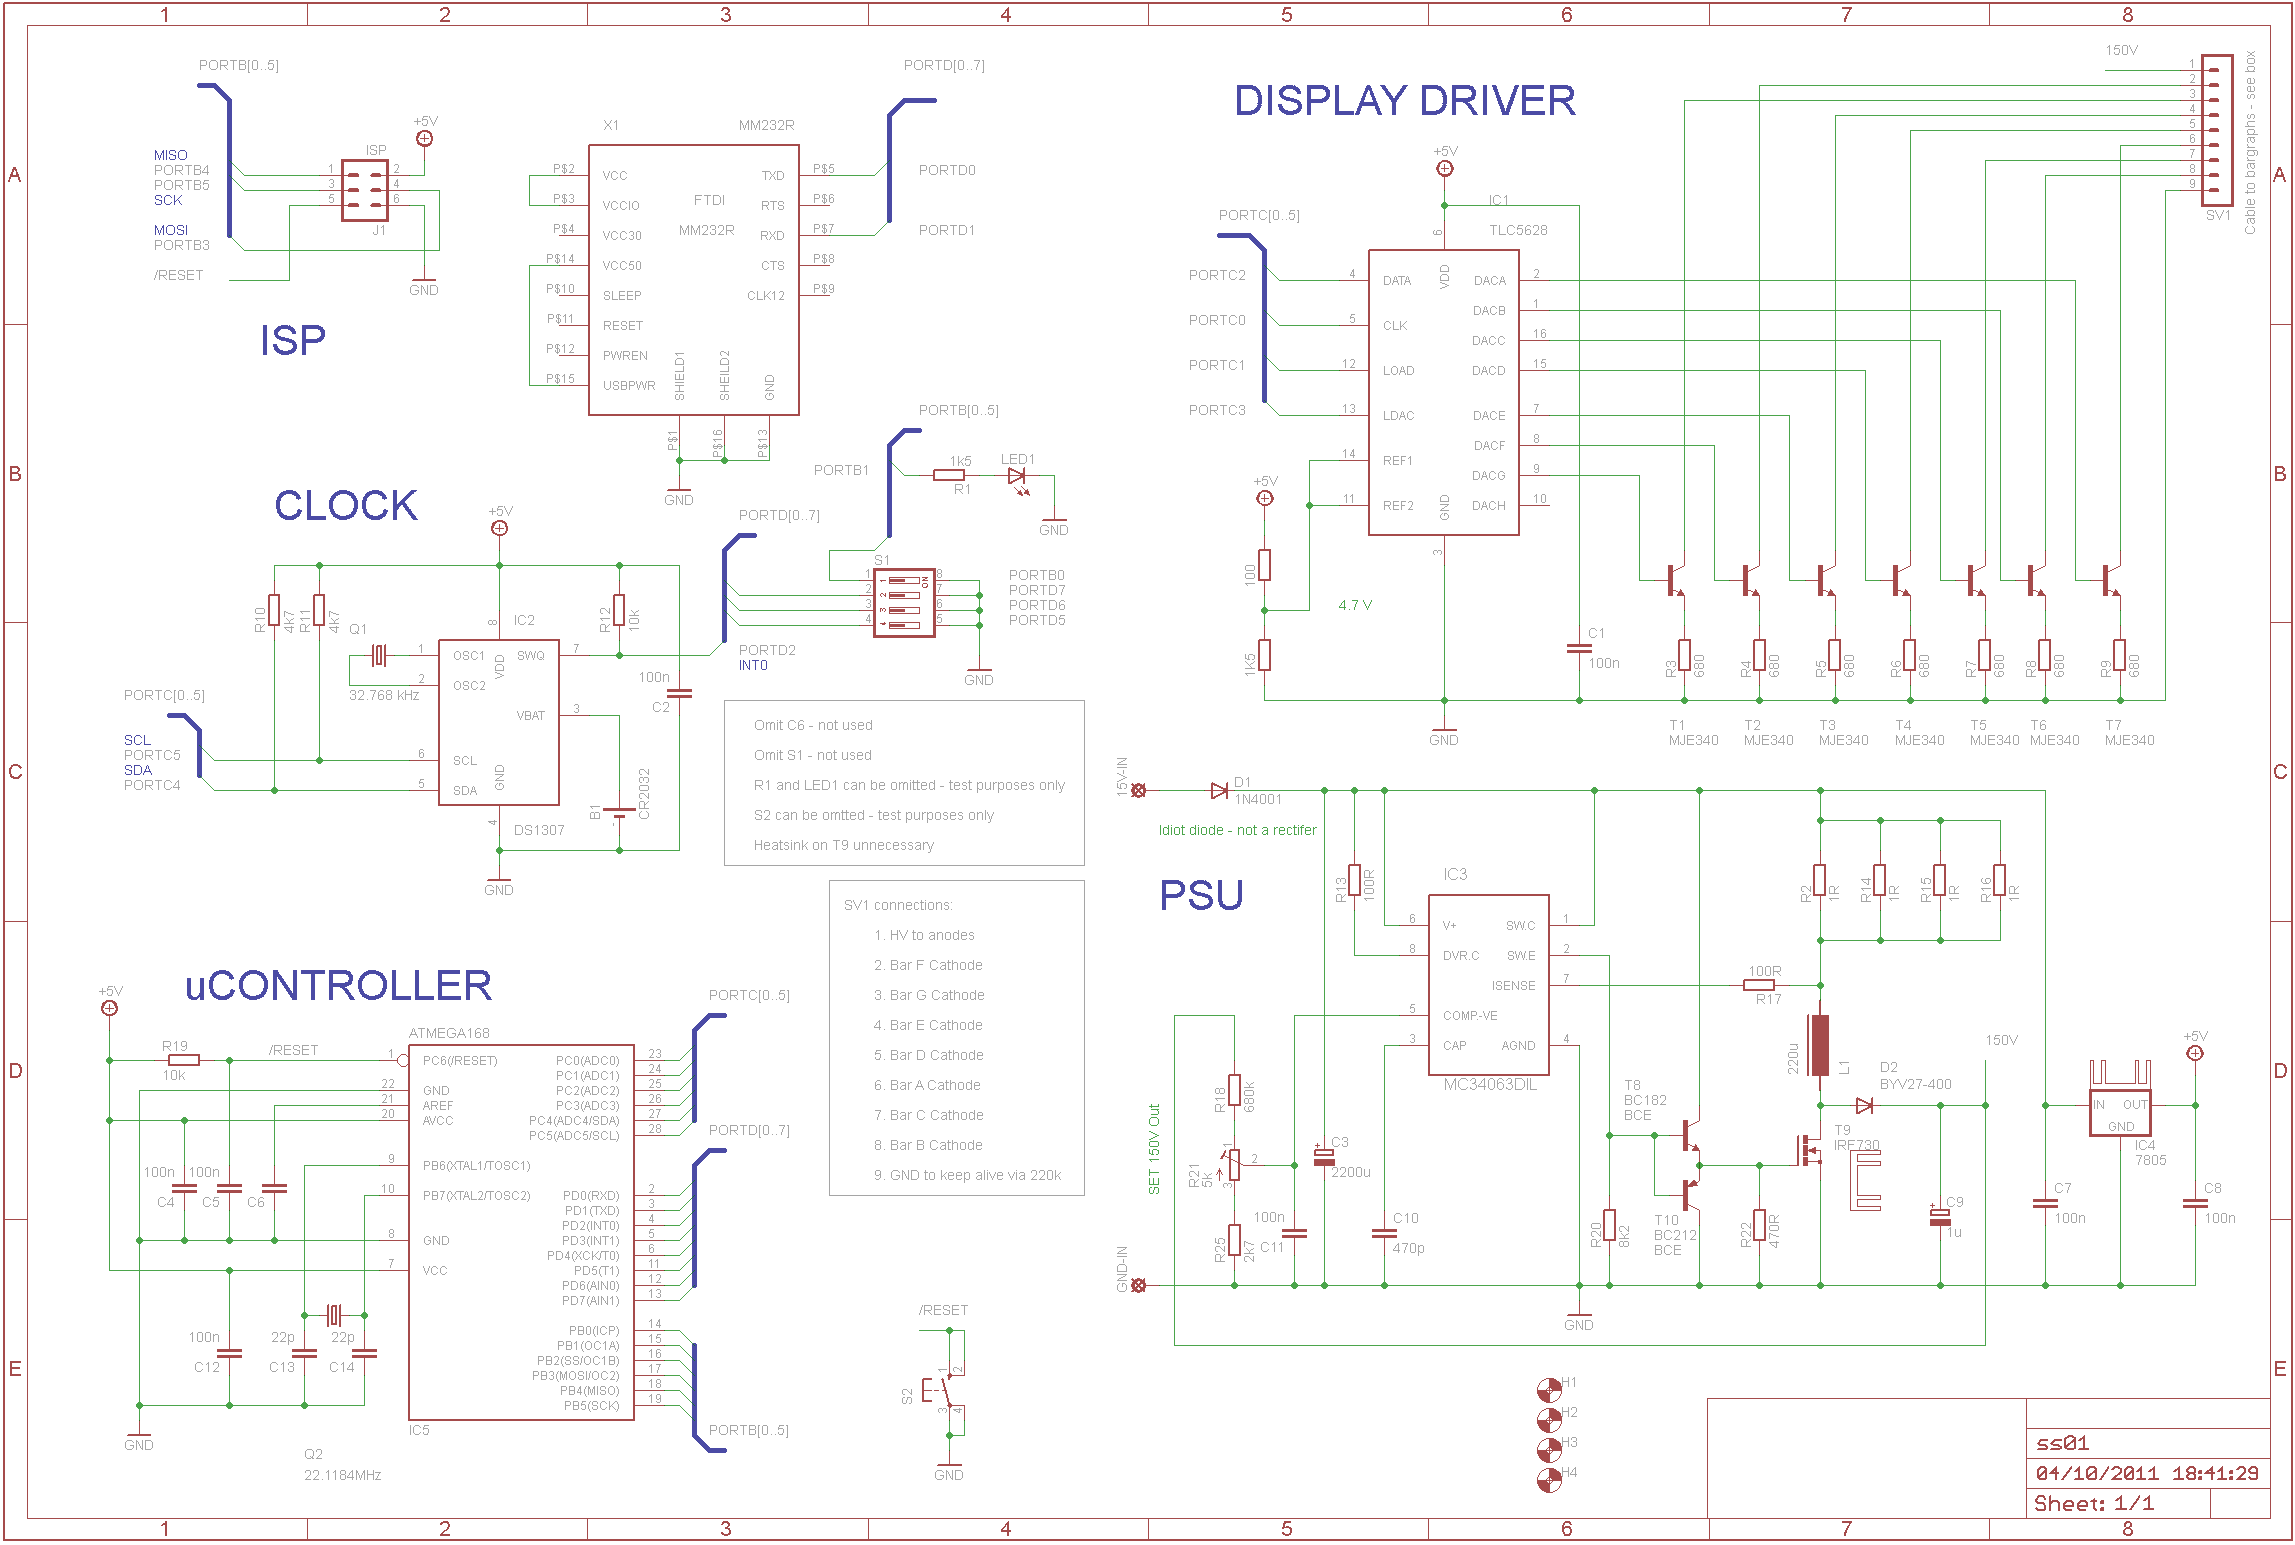 Sgitheach 7 Segment Clock Circuit Diagram The Pcb Design Is Based On A Single Sided 100mm X 160mm Board Shortened Slightly To Fit Case Im Going Use Built In Three Parts